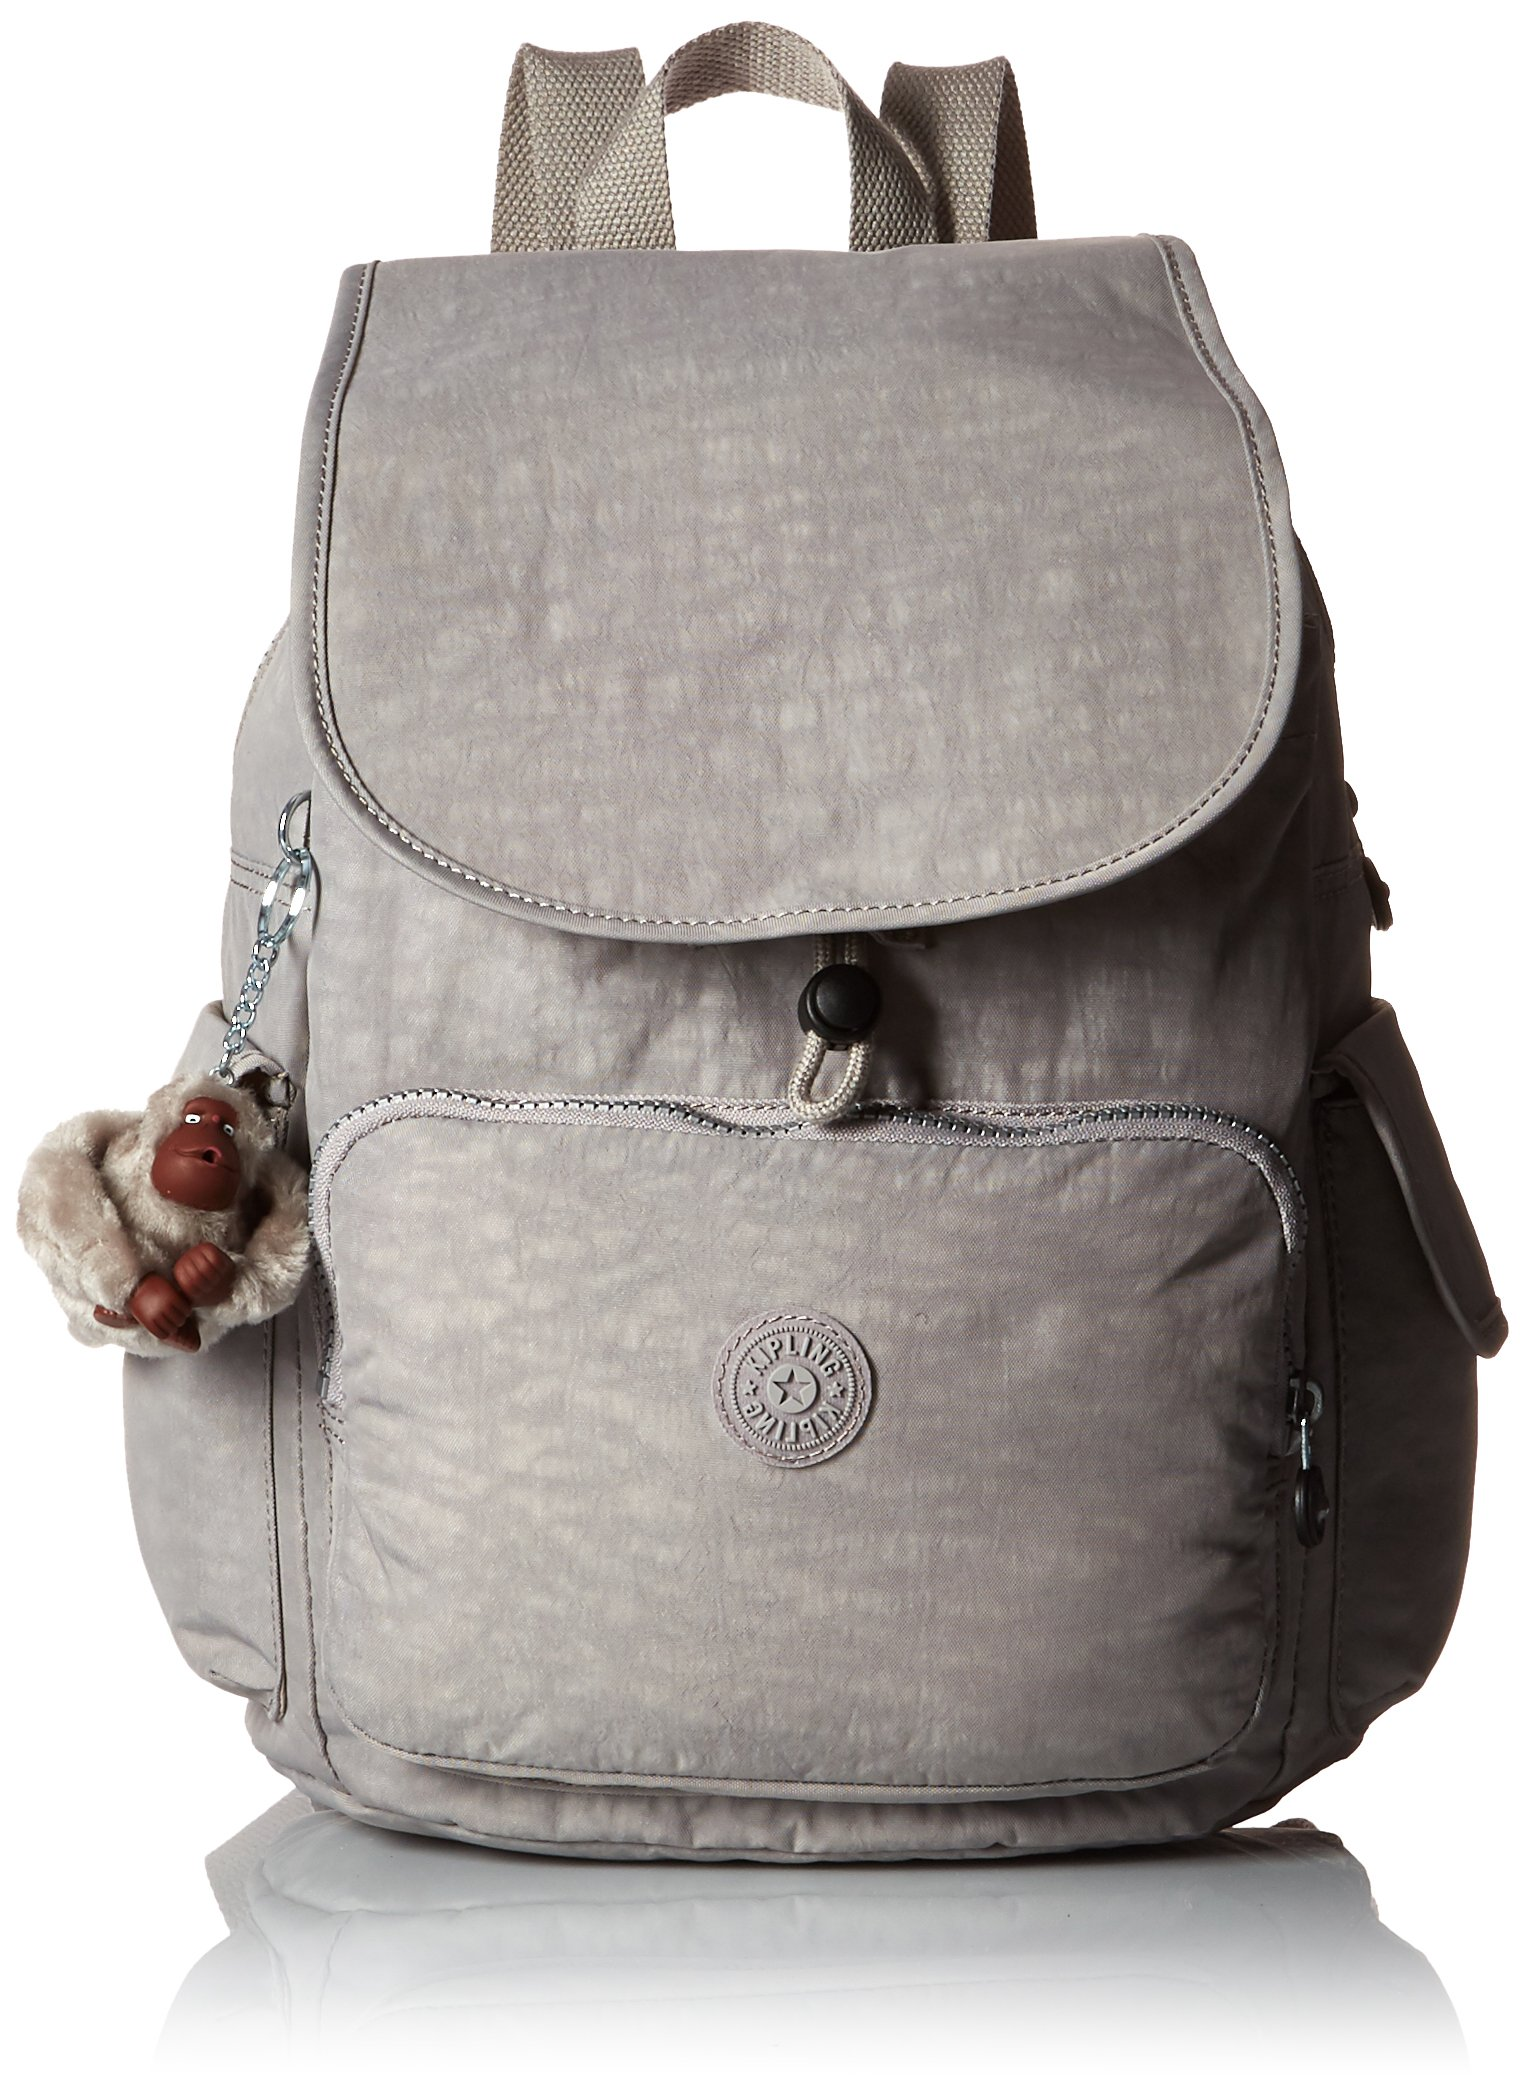 Kipling City Pack Multipurpose Backpack, Slate Grey, One Size